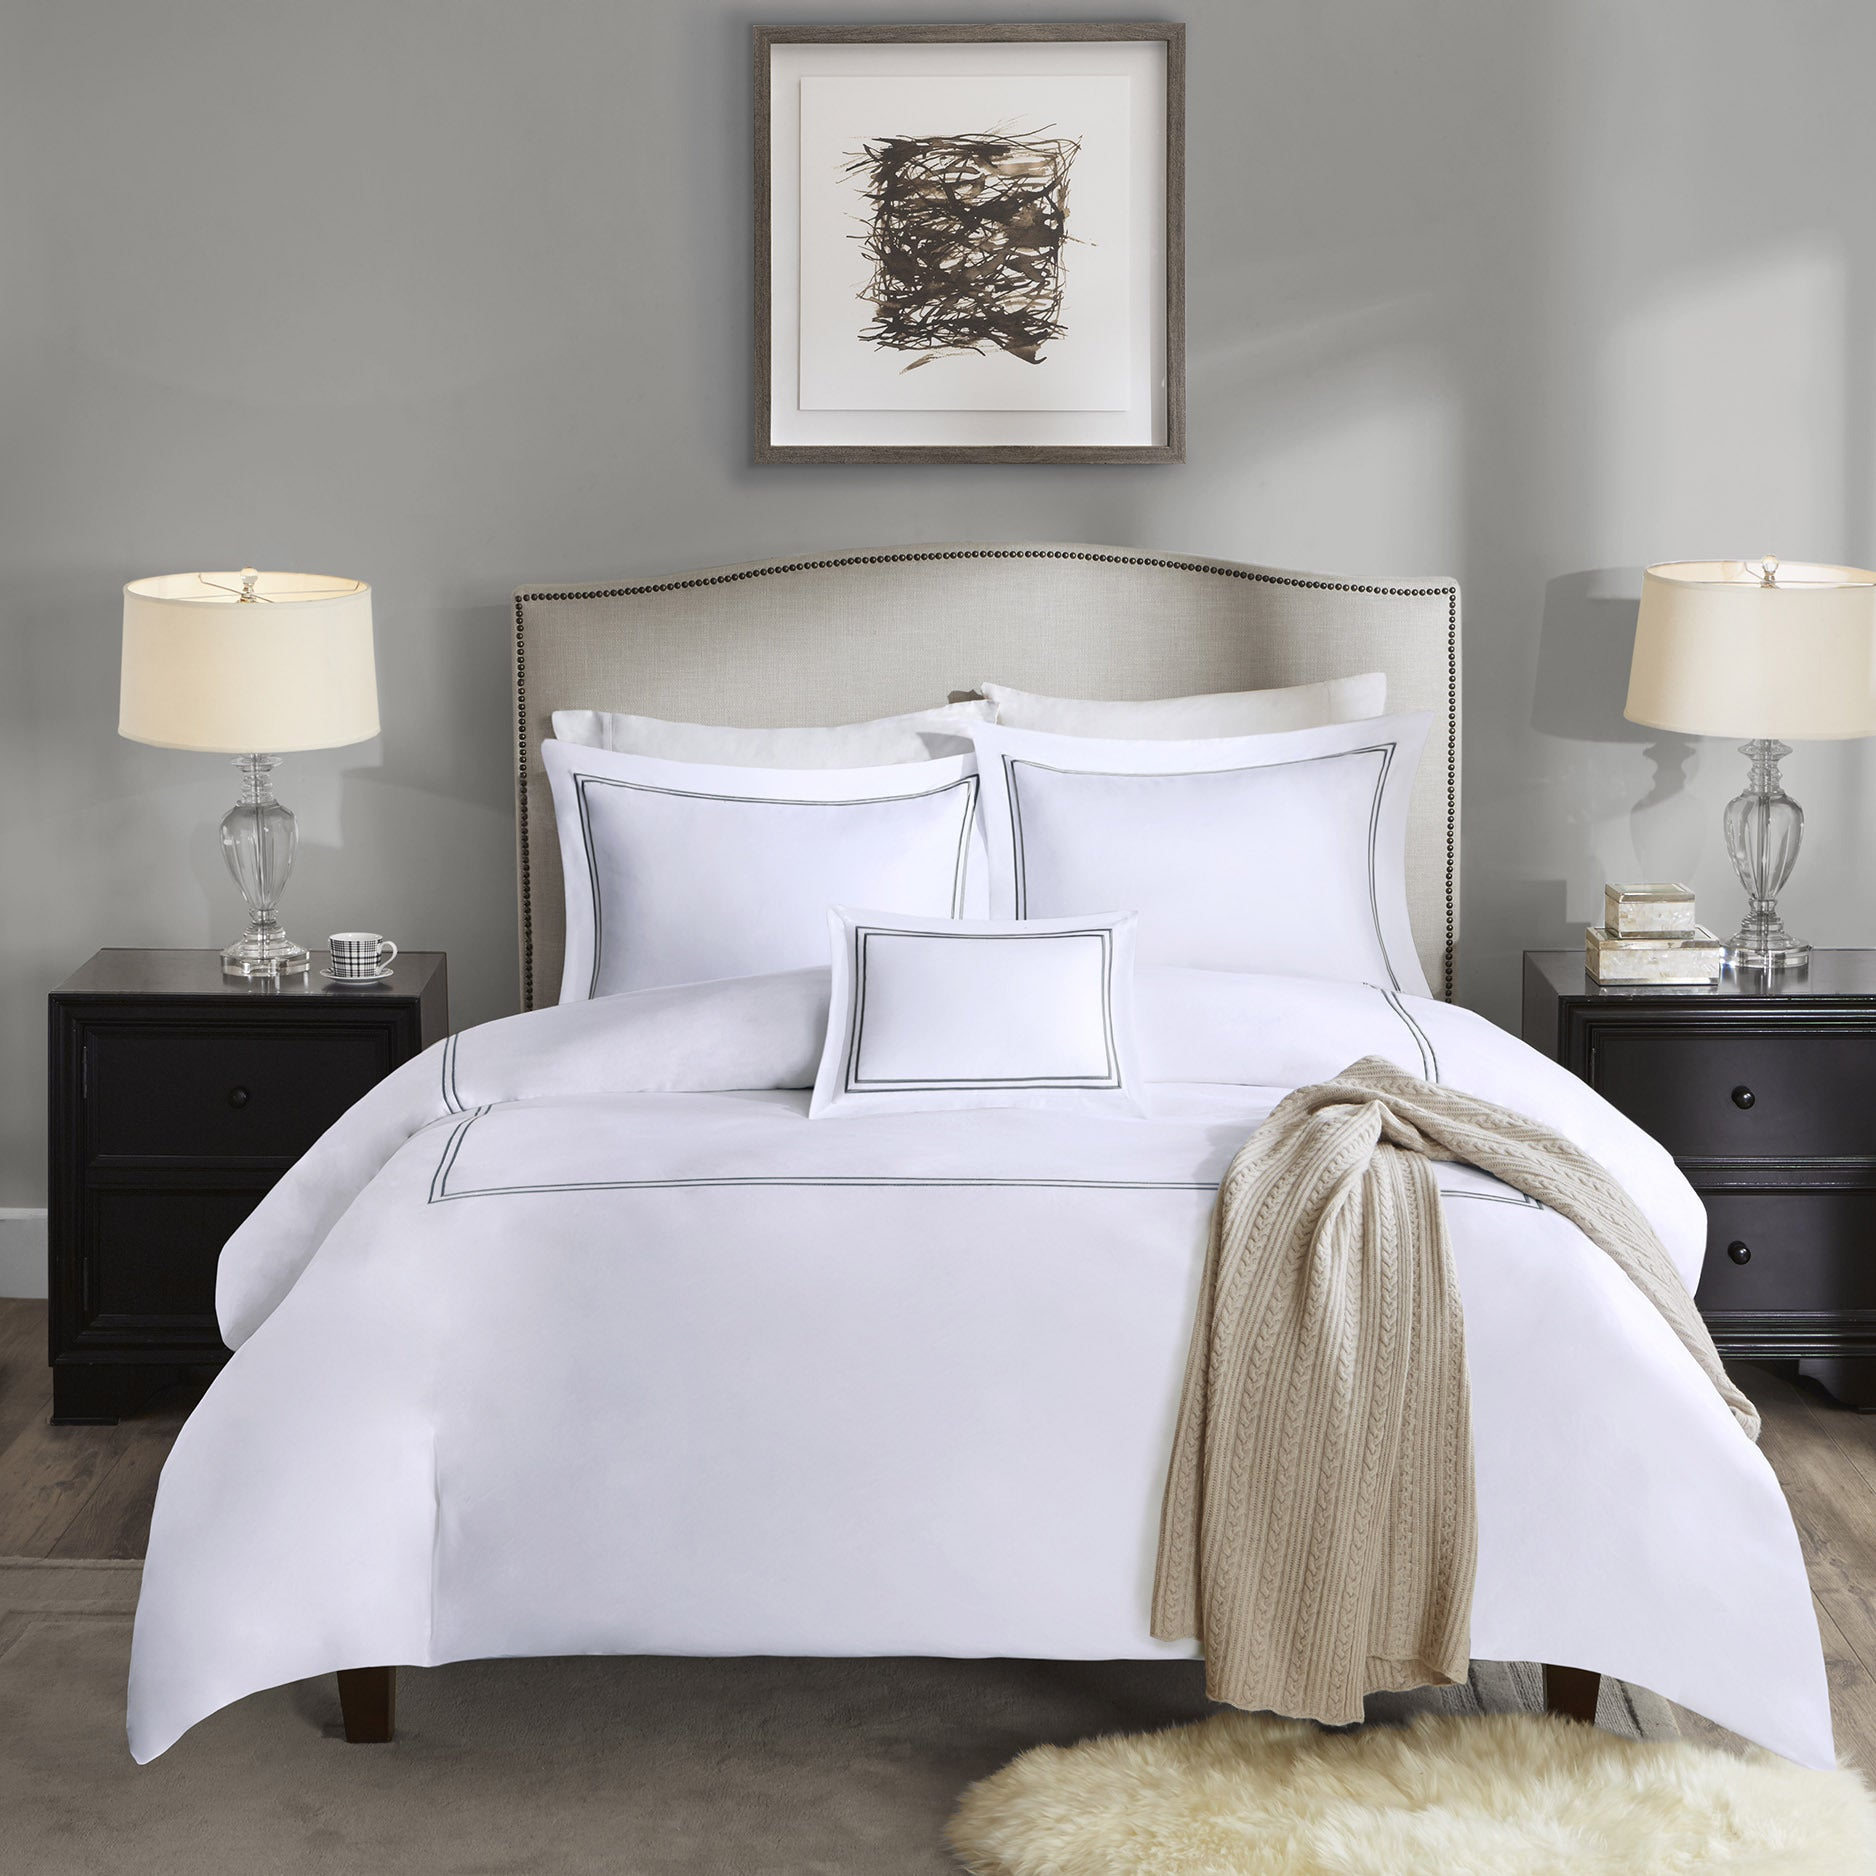 queen madison park forter sets and collection comforters adorable covers cover striped walmart superlative duvet genevieve black your comforter bedding set for of white most piece